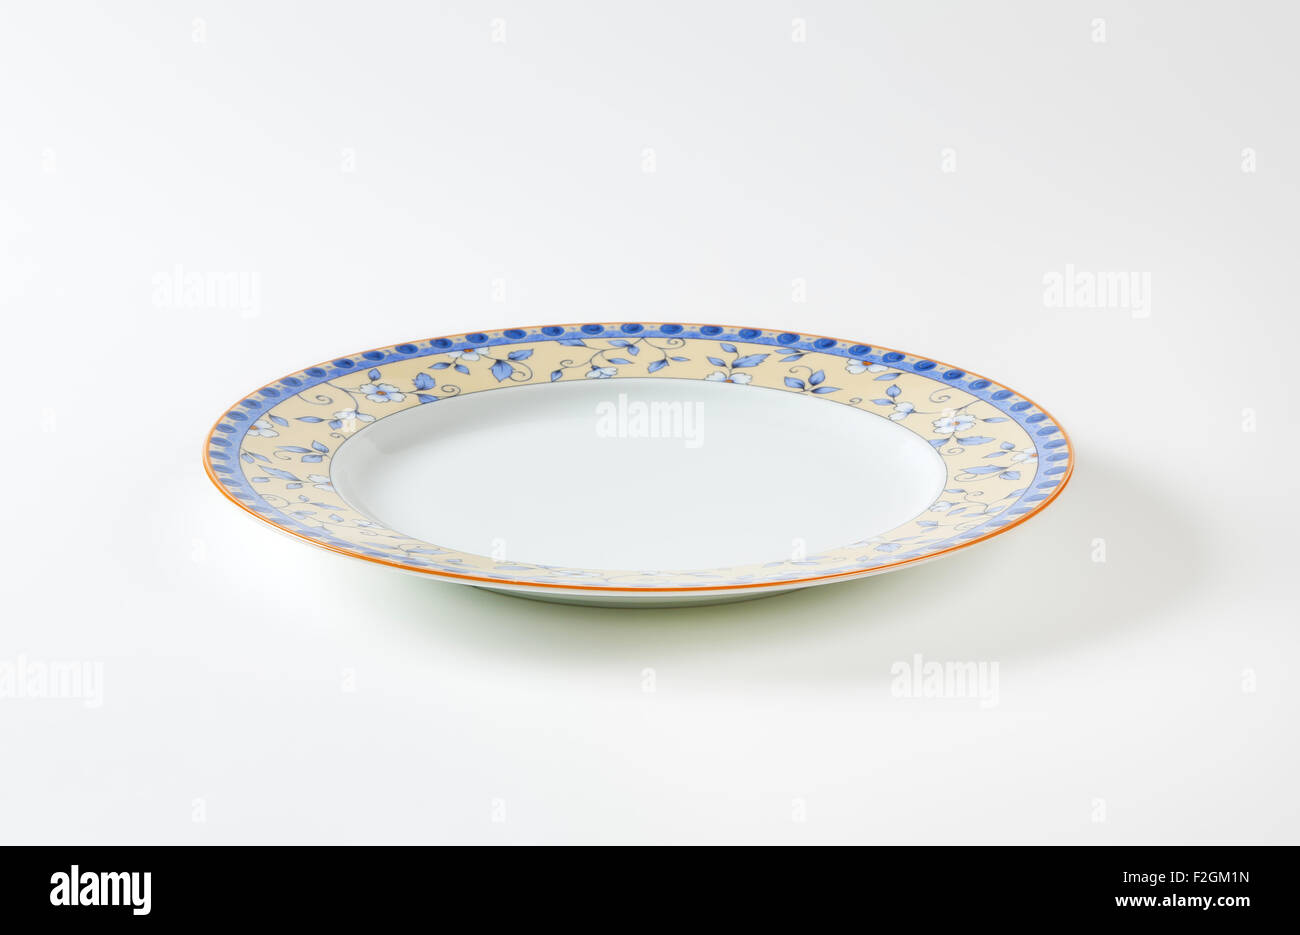 Country style dinner plate with floral design border and brown trim - Stock Image